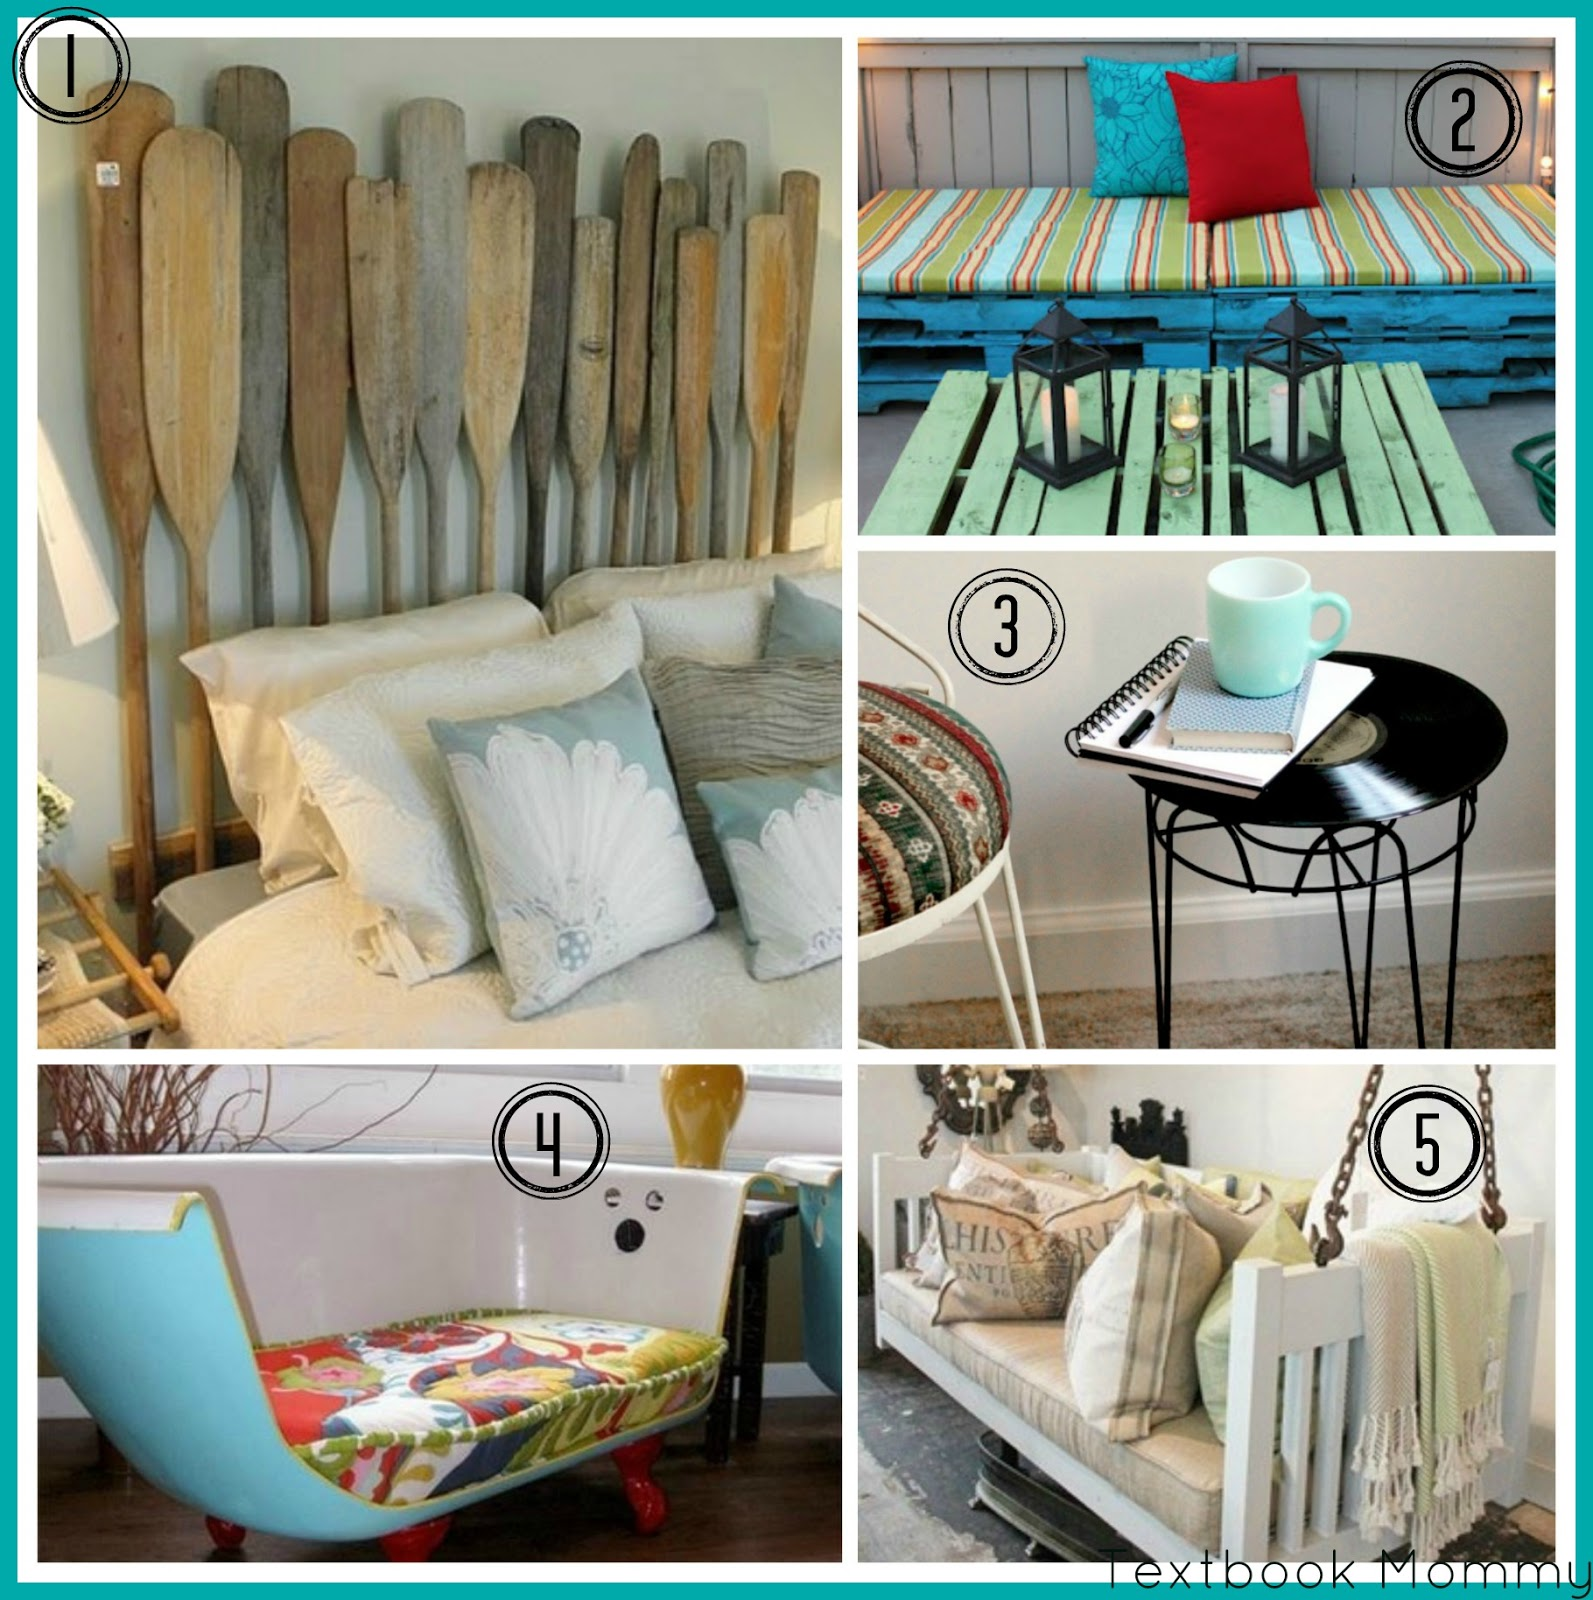 Textbook Mommy: 5 Unique Repurposed Projects For The Home